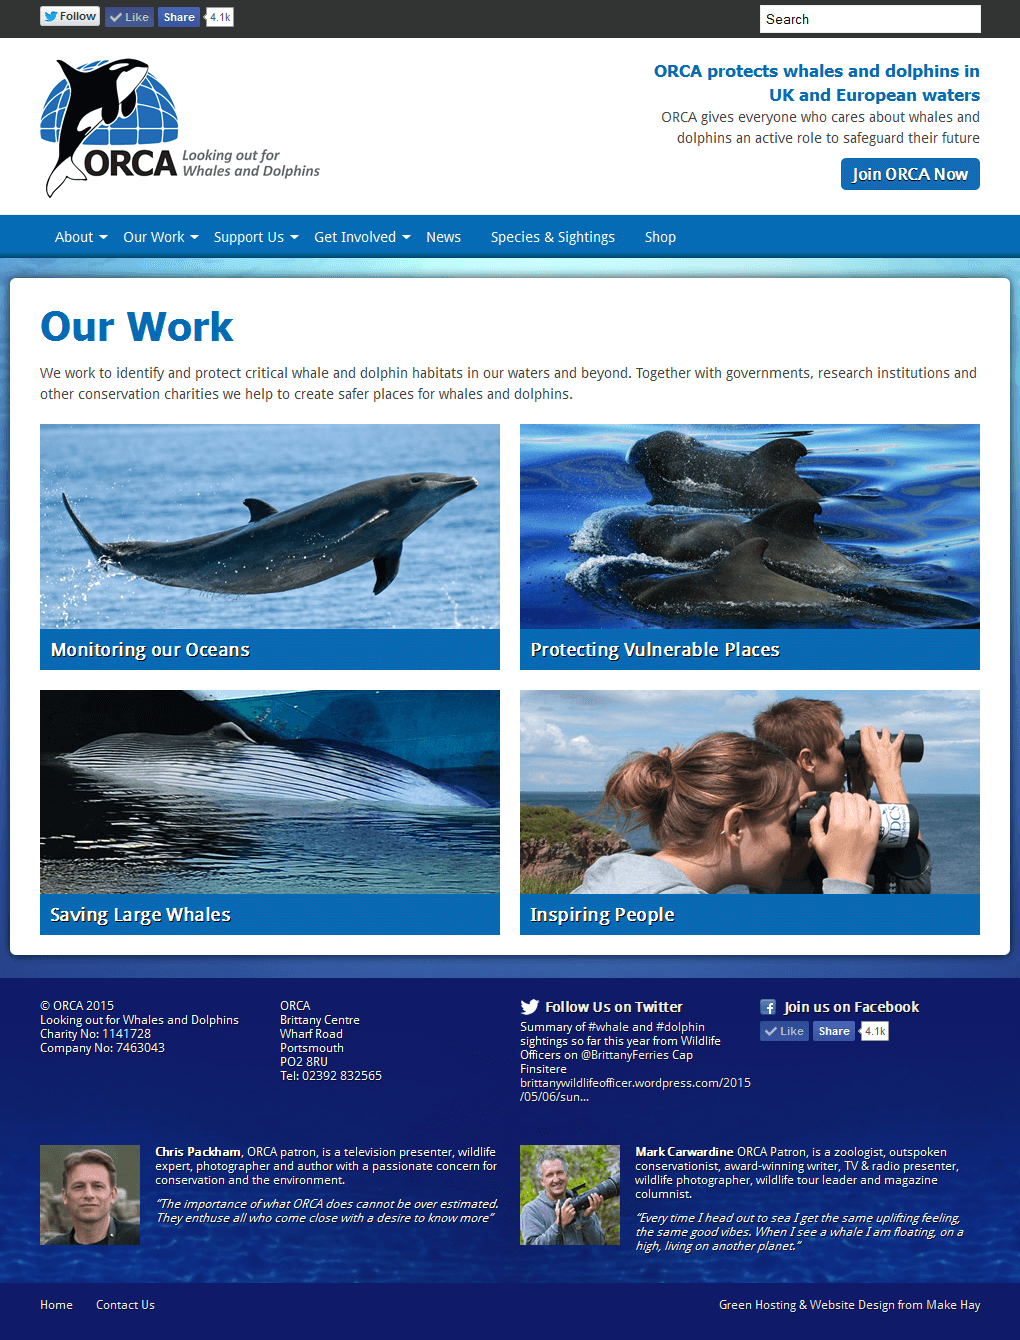 ORCA - Protecting Whales and Dolphins The index for ORCA's Work section